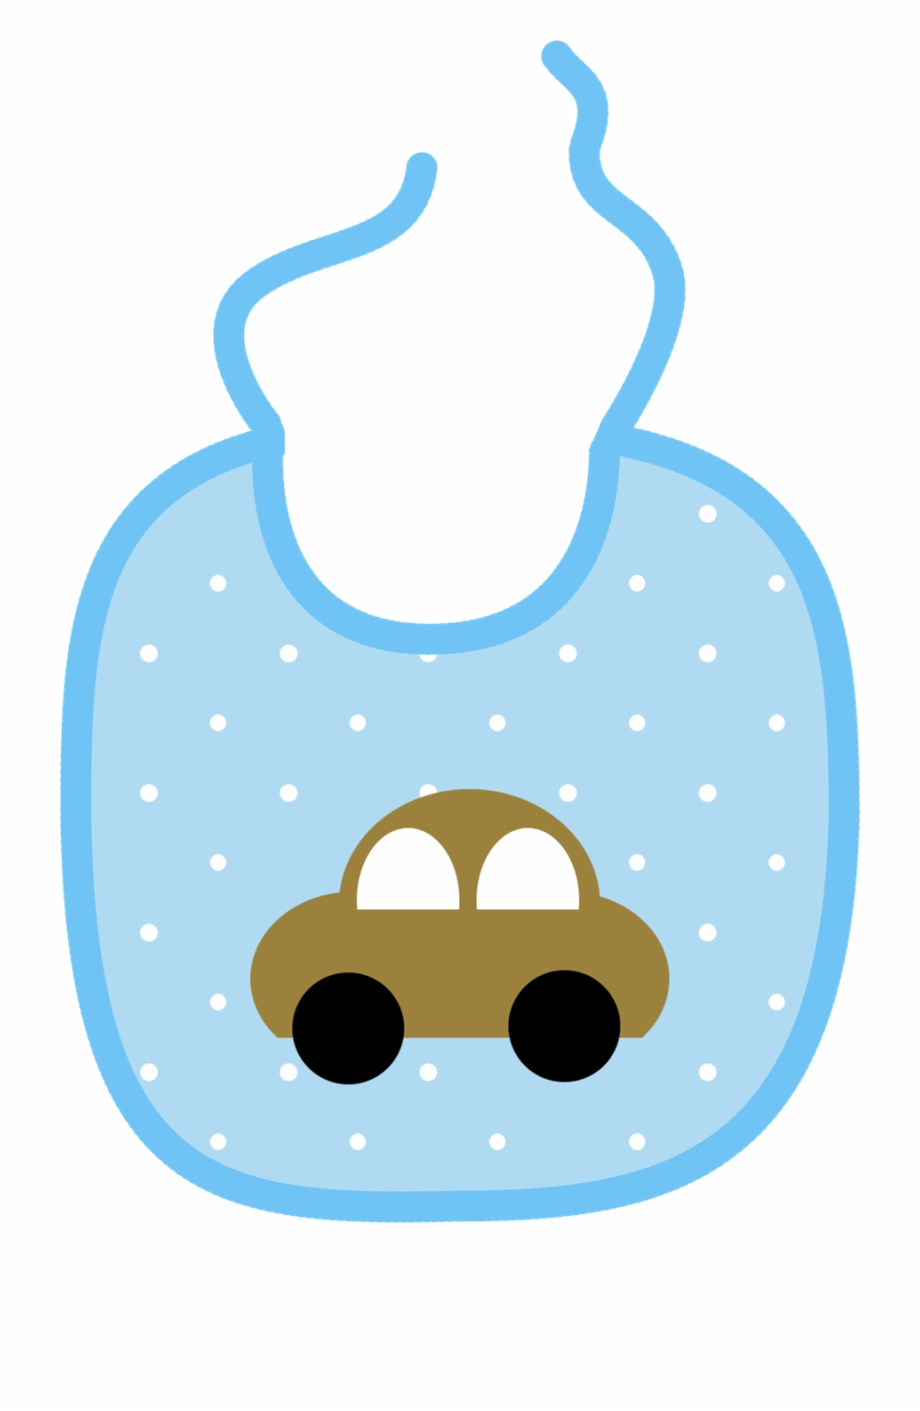 Freeuse Stock Baby In Blanket Clipart Bib Clipart.